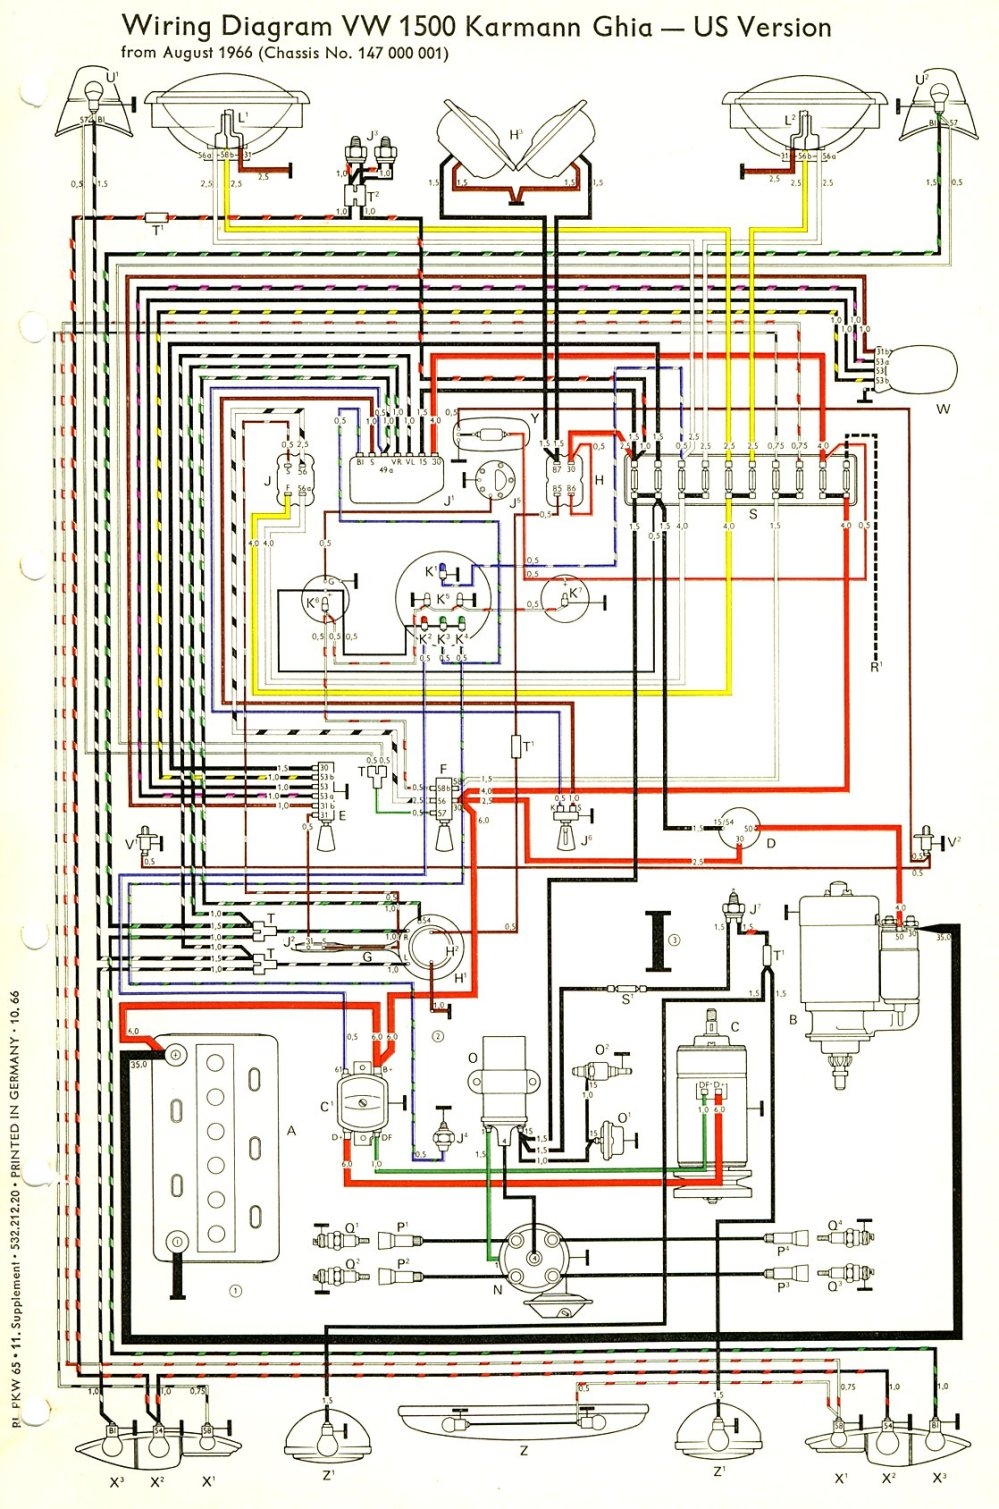 medium resolution of 1963 vw engine wiring archive of automotive wiring diagram u2022 rh rightbrothers co